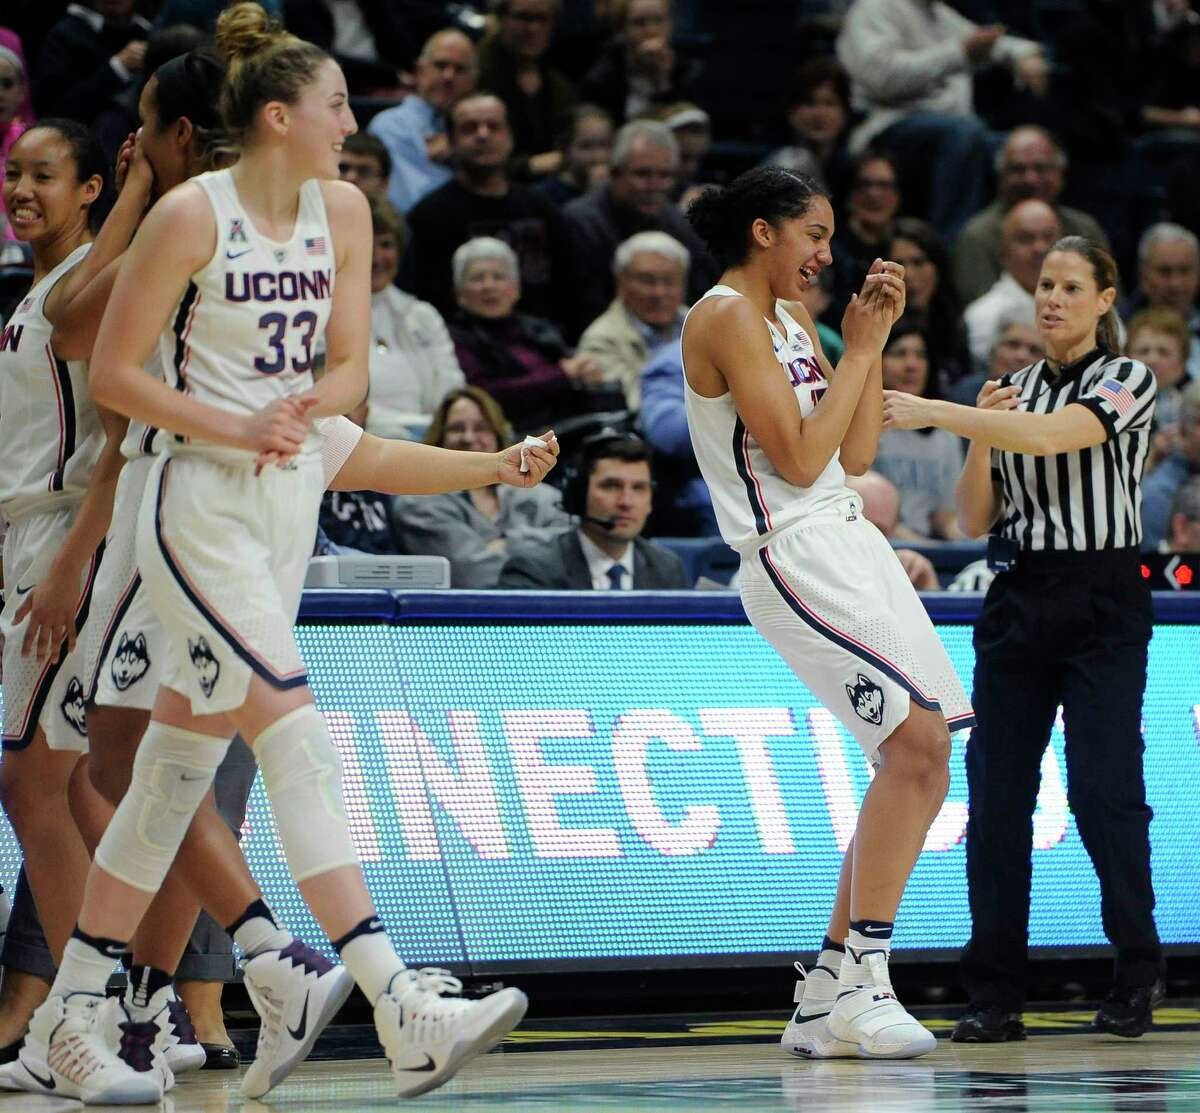 Connecticut's Gabby Williams, front right, reacts after taking an elbow to her tooth in the second half of an NCAA college basketball game against Tulane, Sunday, Jan. 22, 2017, in Storrs, Conn.